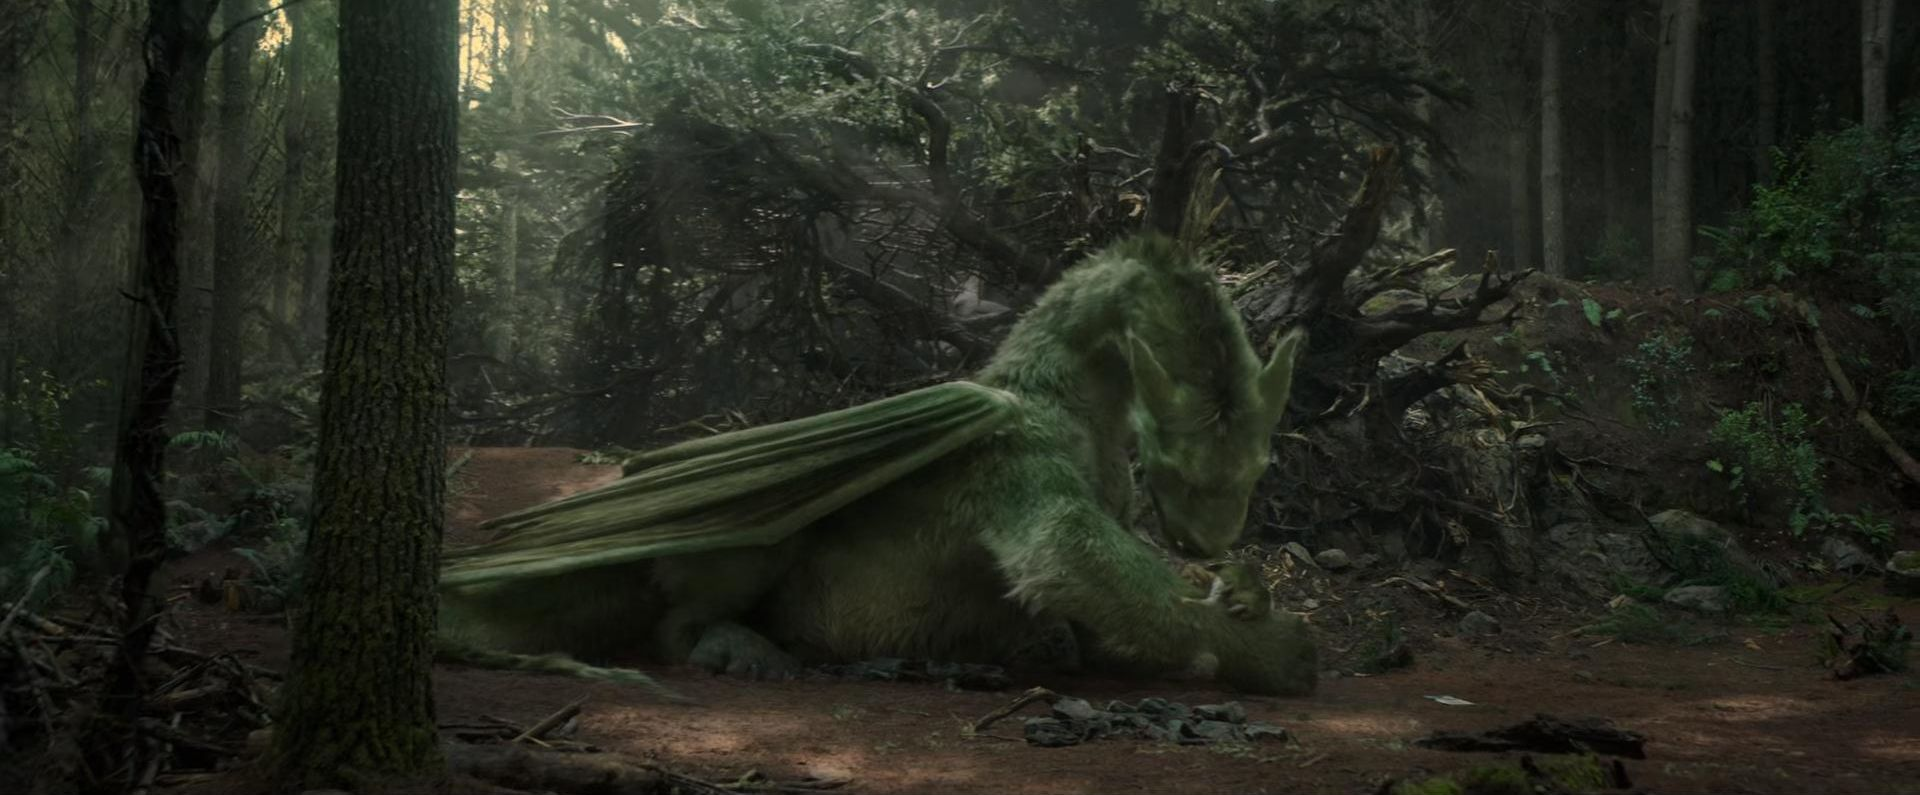 VIDEO: Intervju s Davidom Loweryem i druge najave za film 'Pete's Dragon'